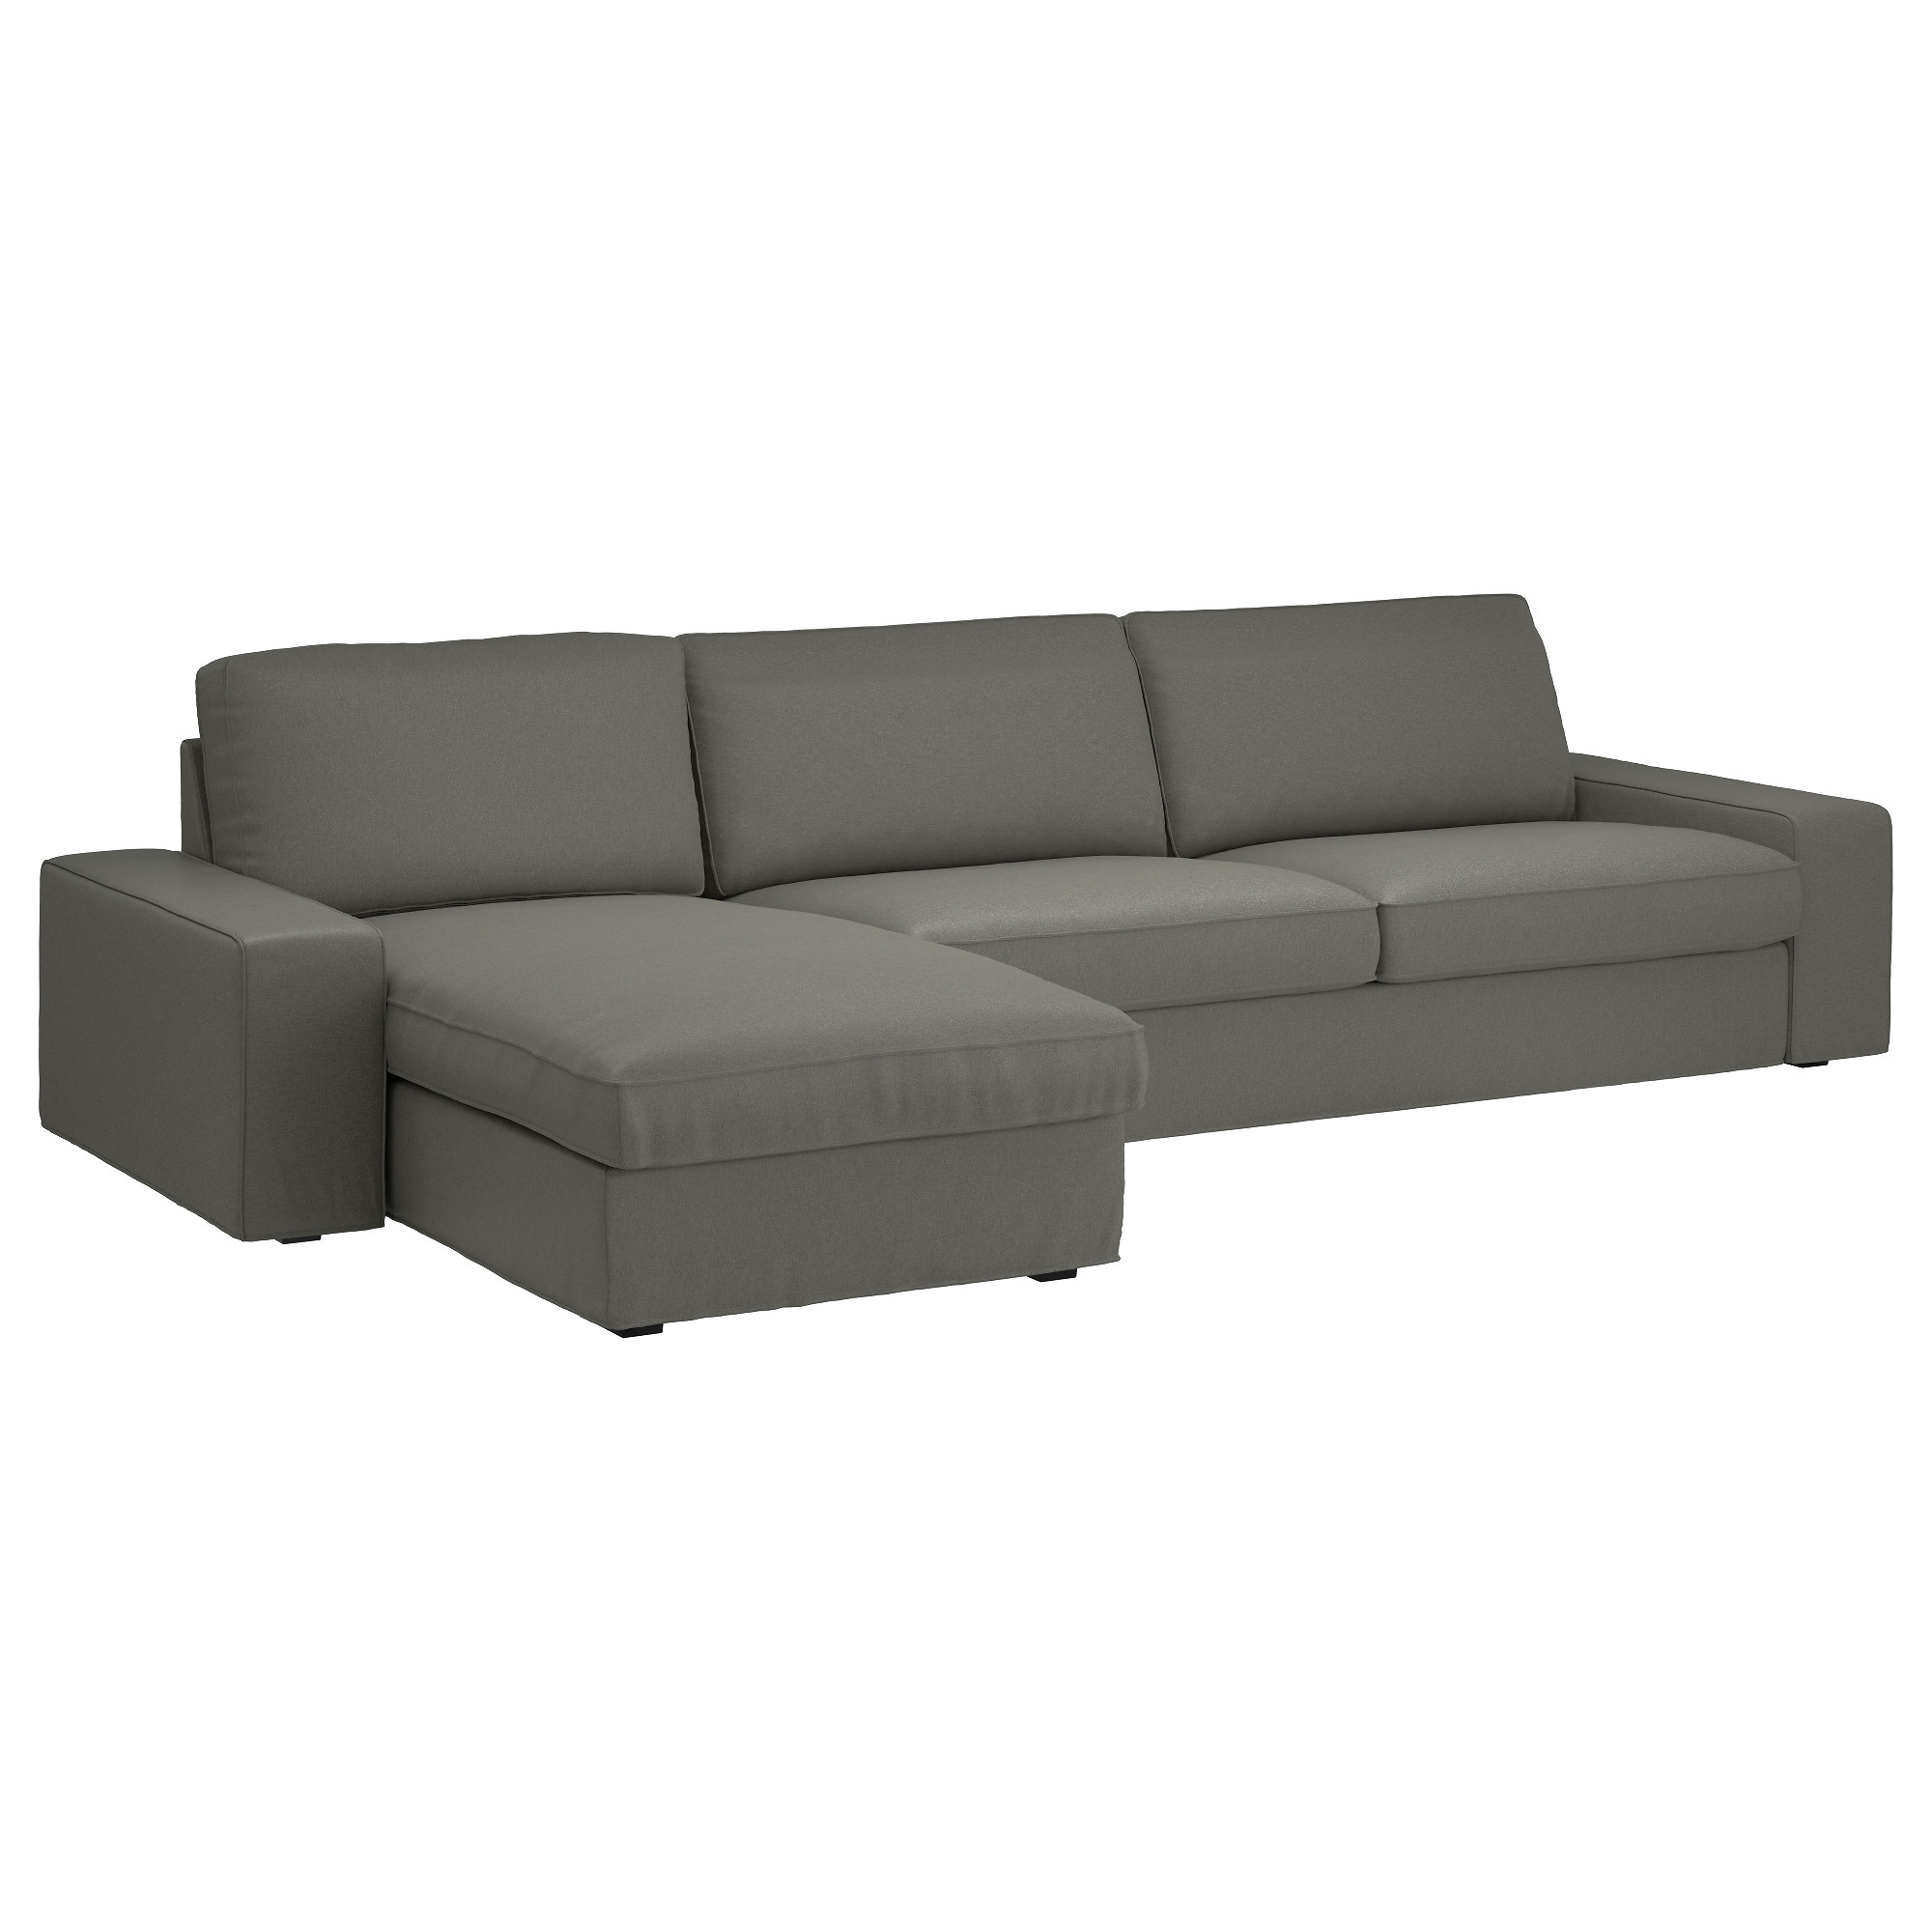 carla delivery fabric chaise small couches corner couch next reversible day sampler sofa